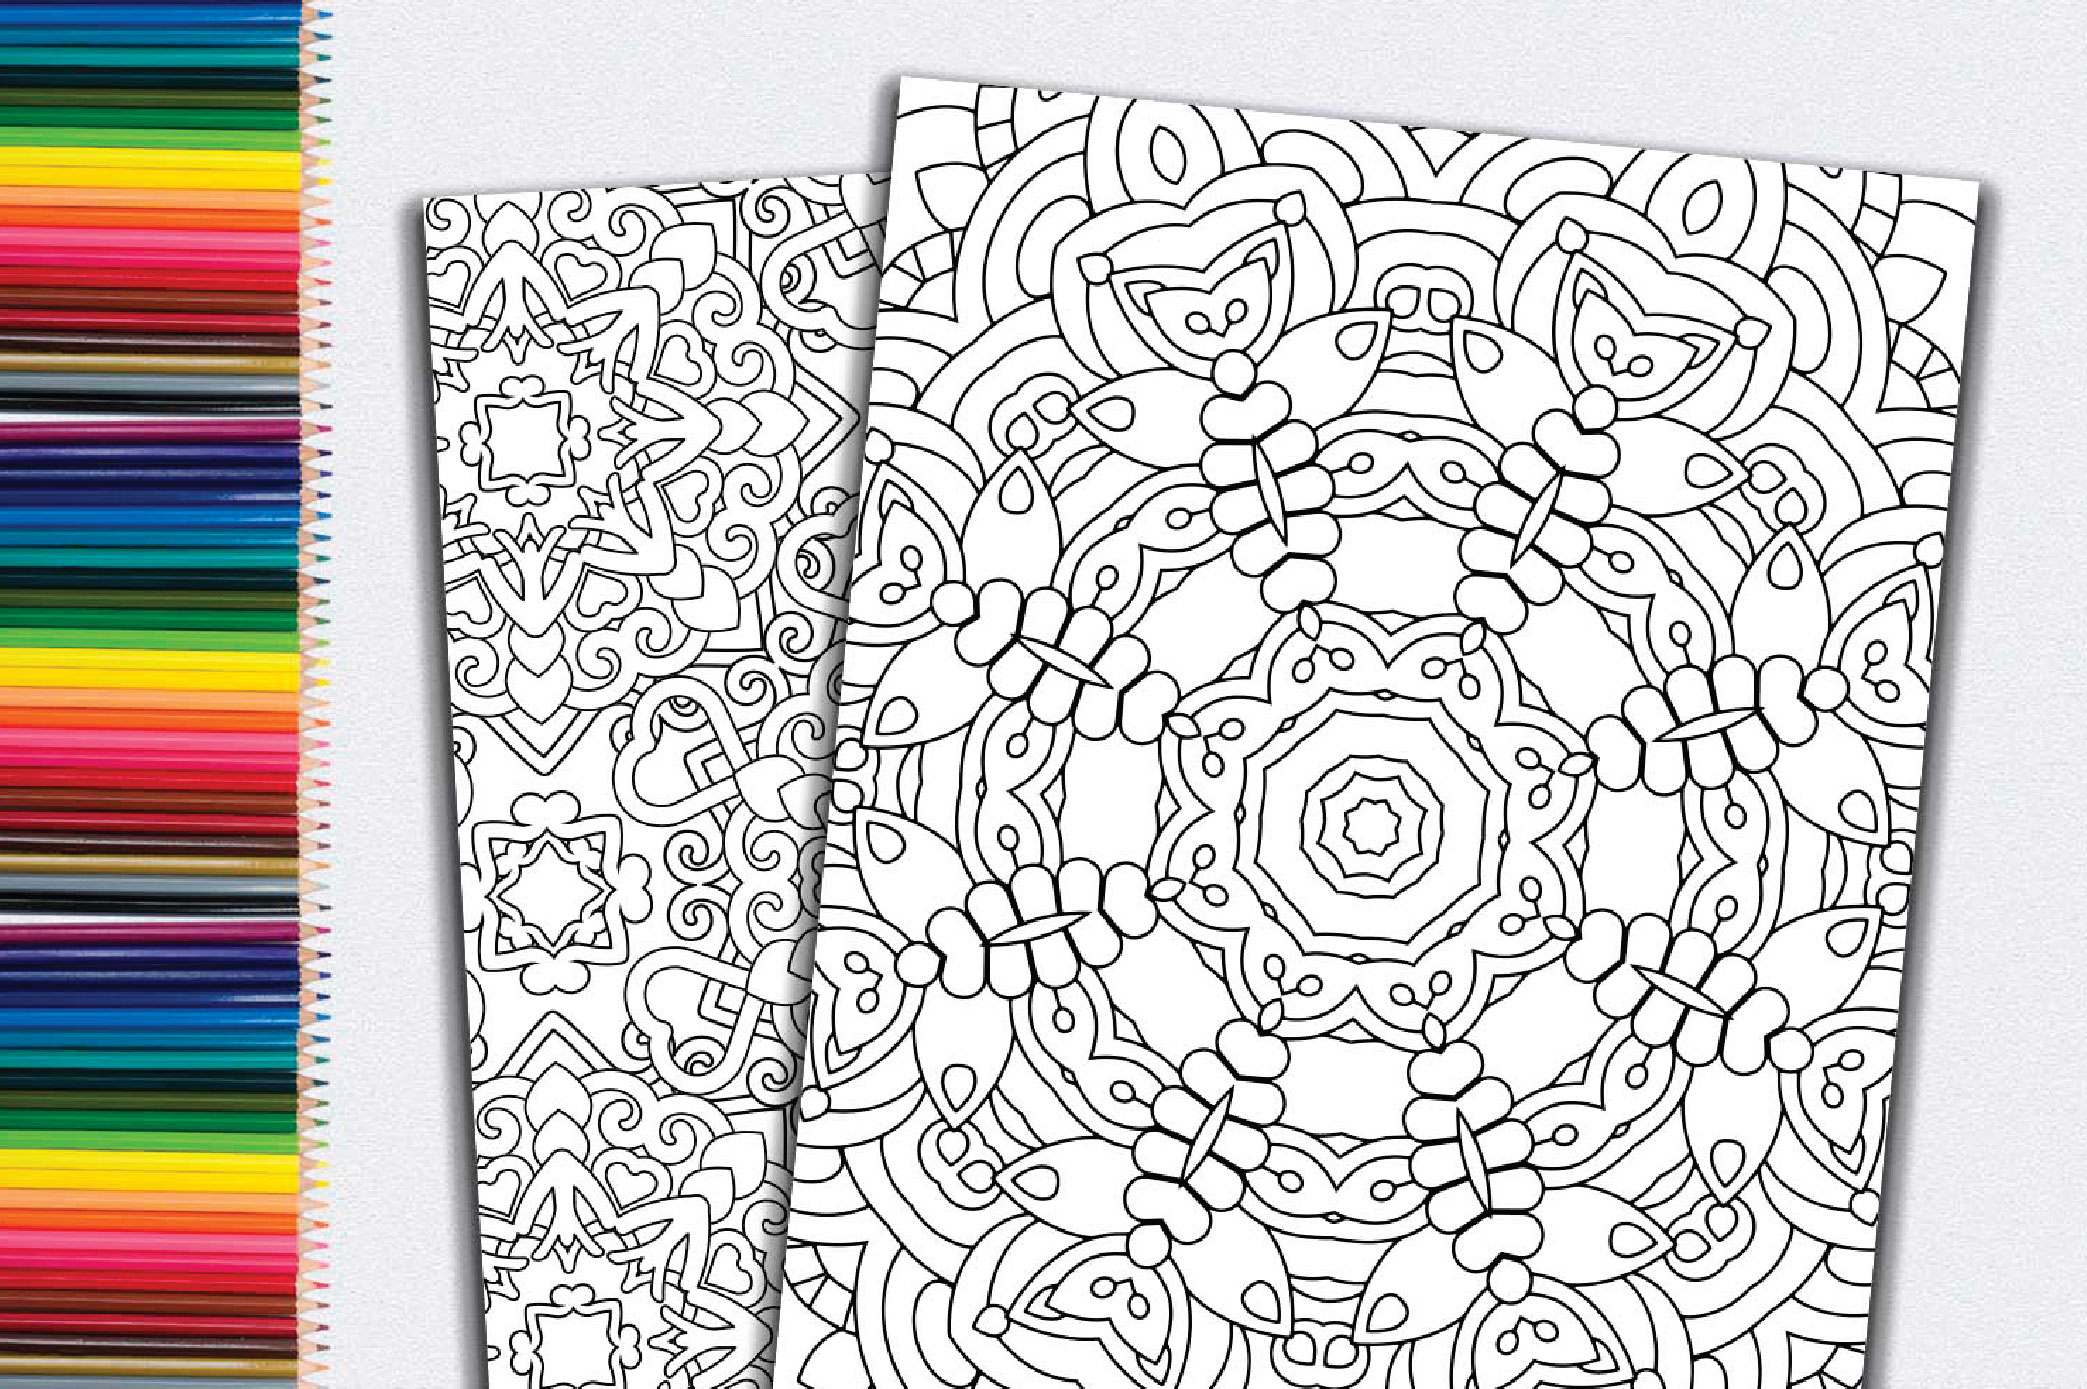 50 Geometric Coloring Pages example image 11